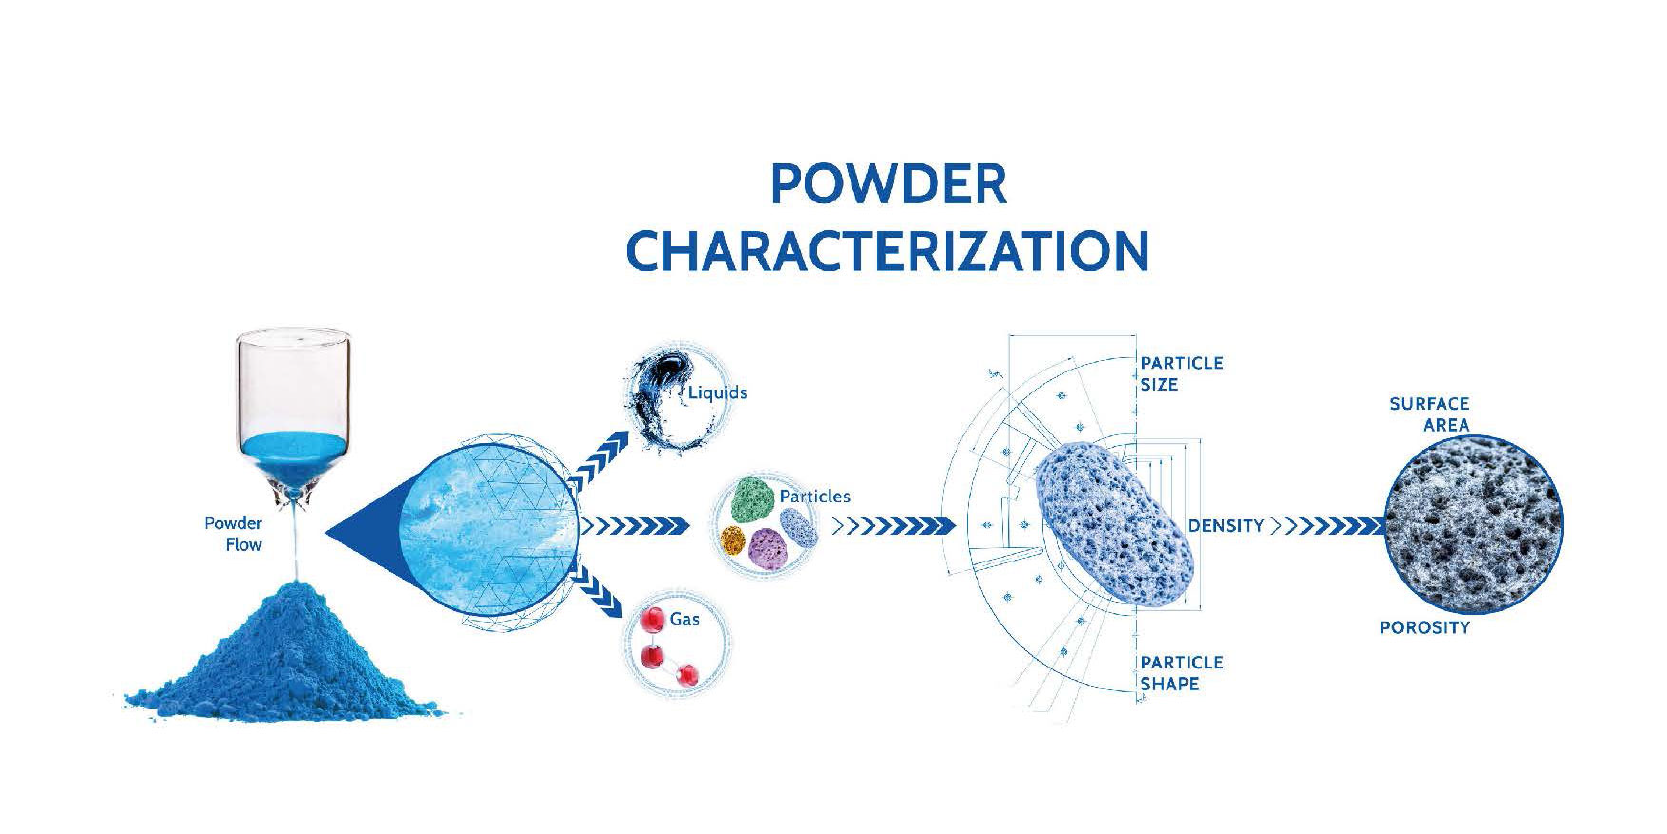 The definitive guide to powder characterization